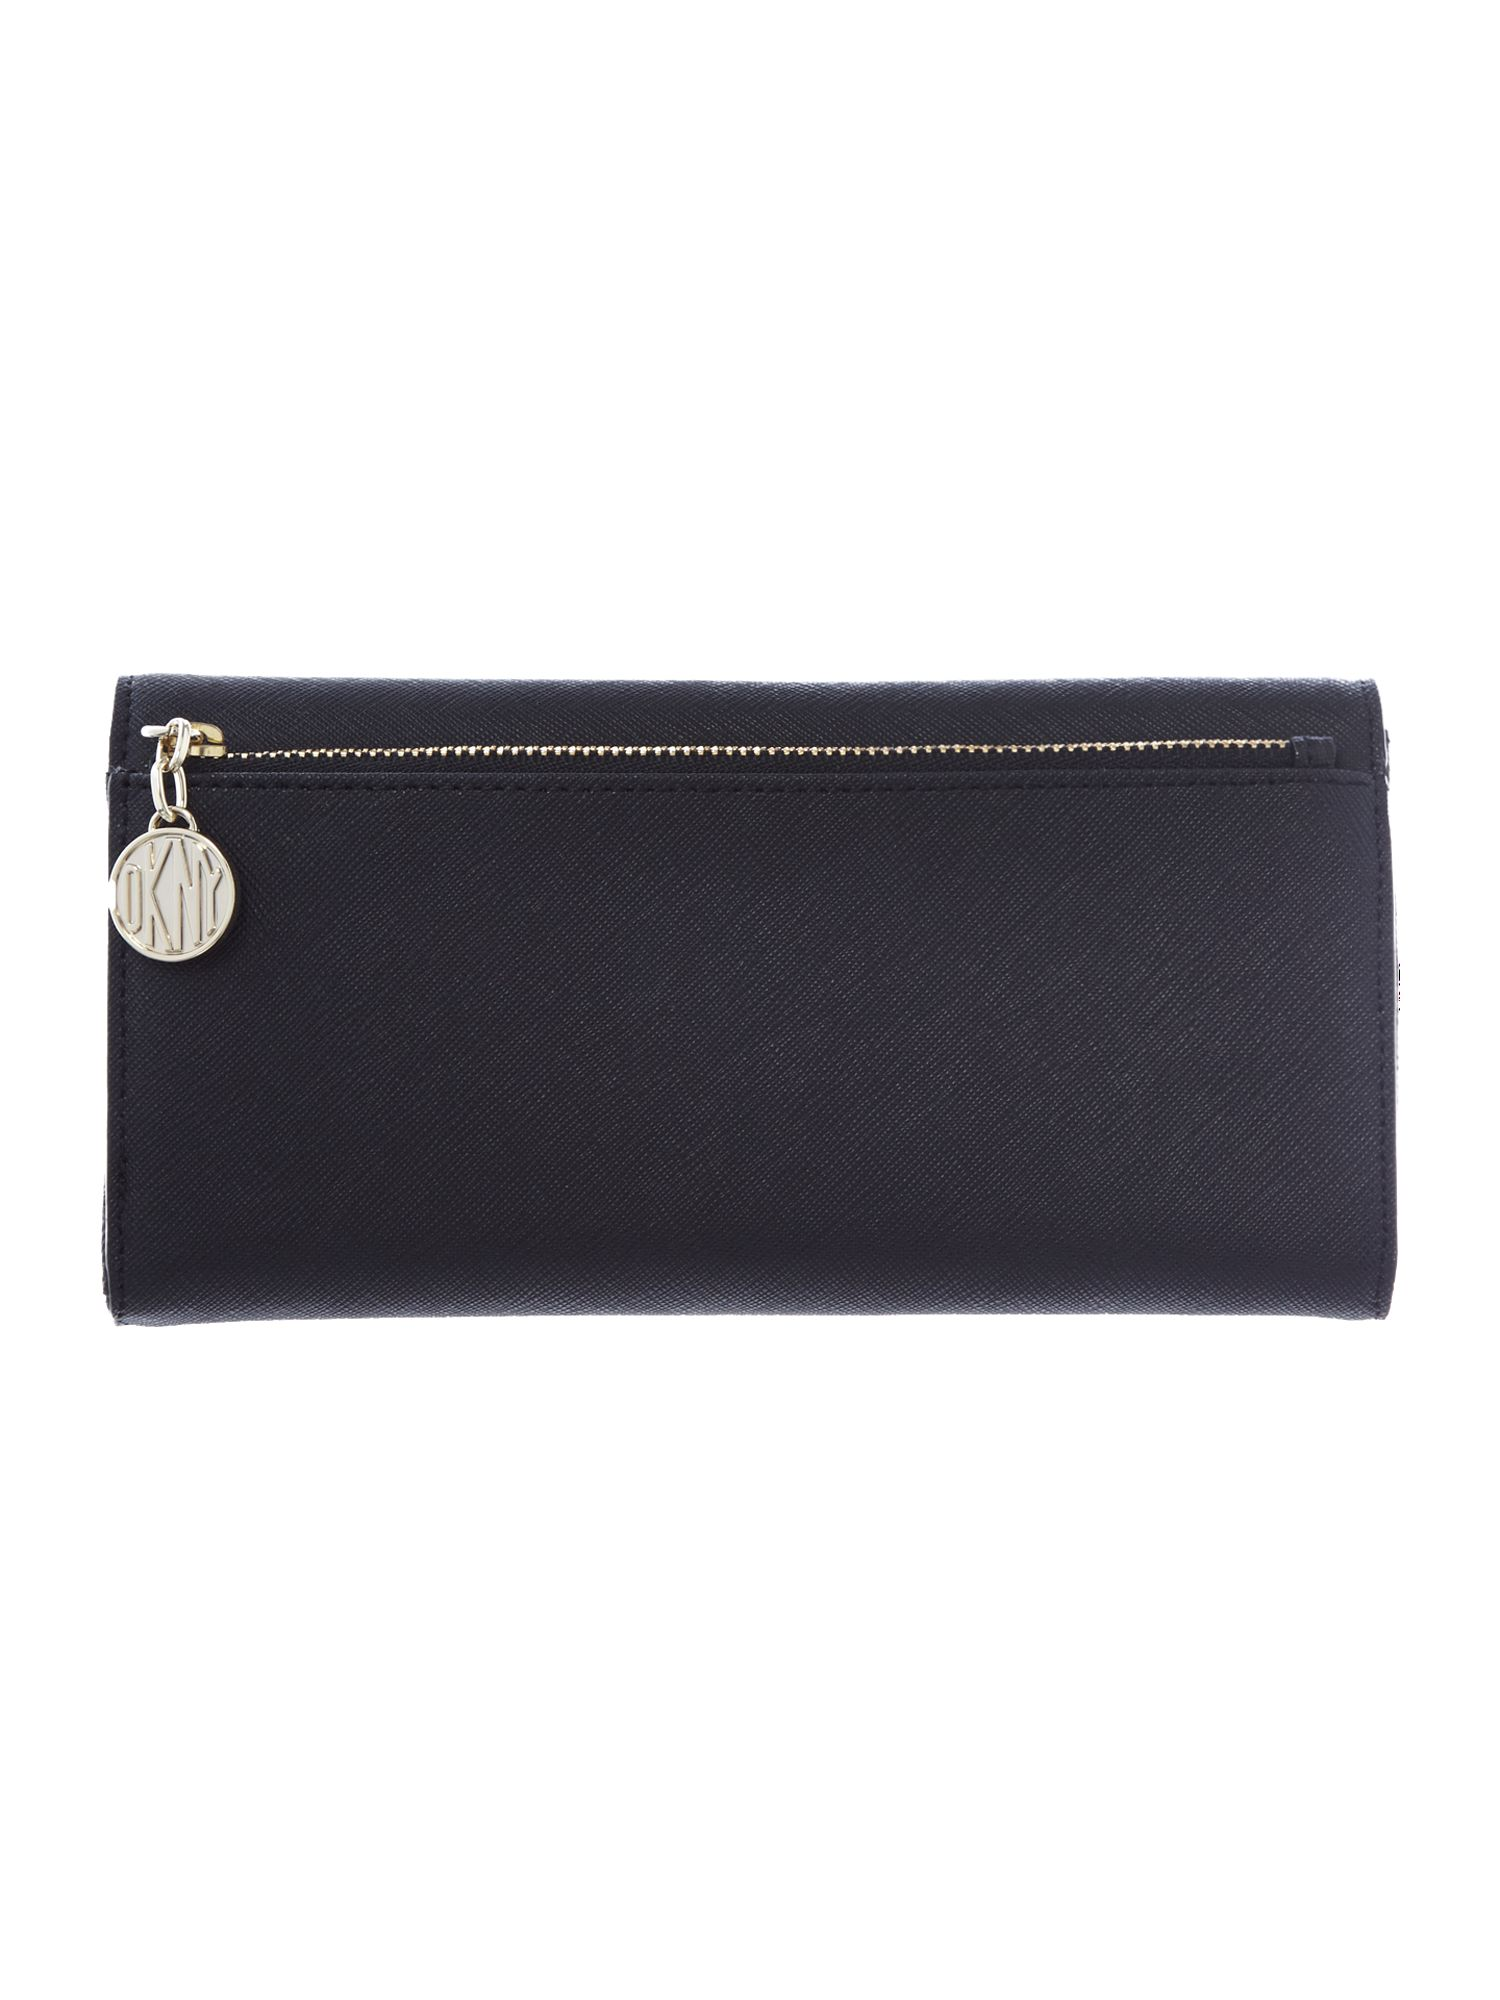 Saffiano black large flap over pourse